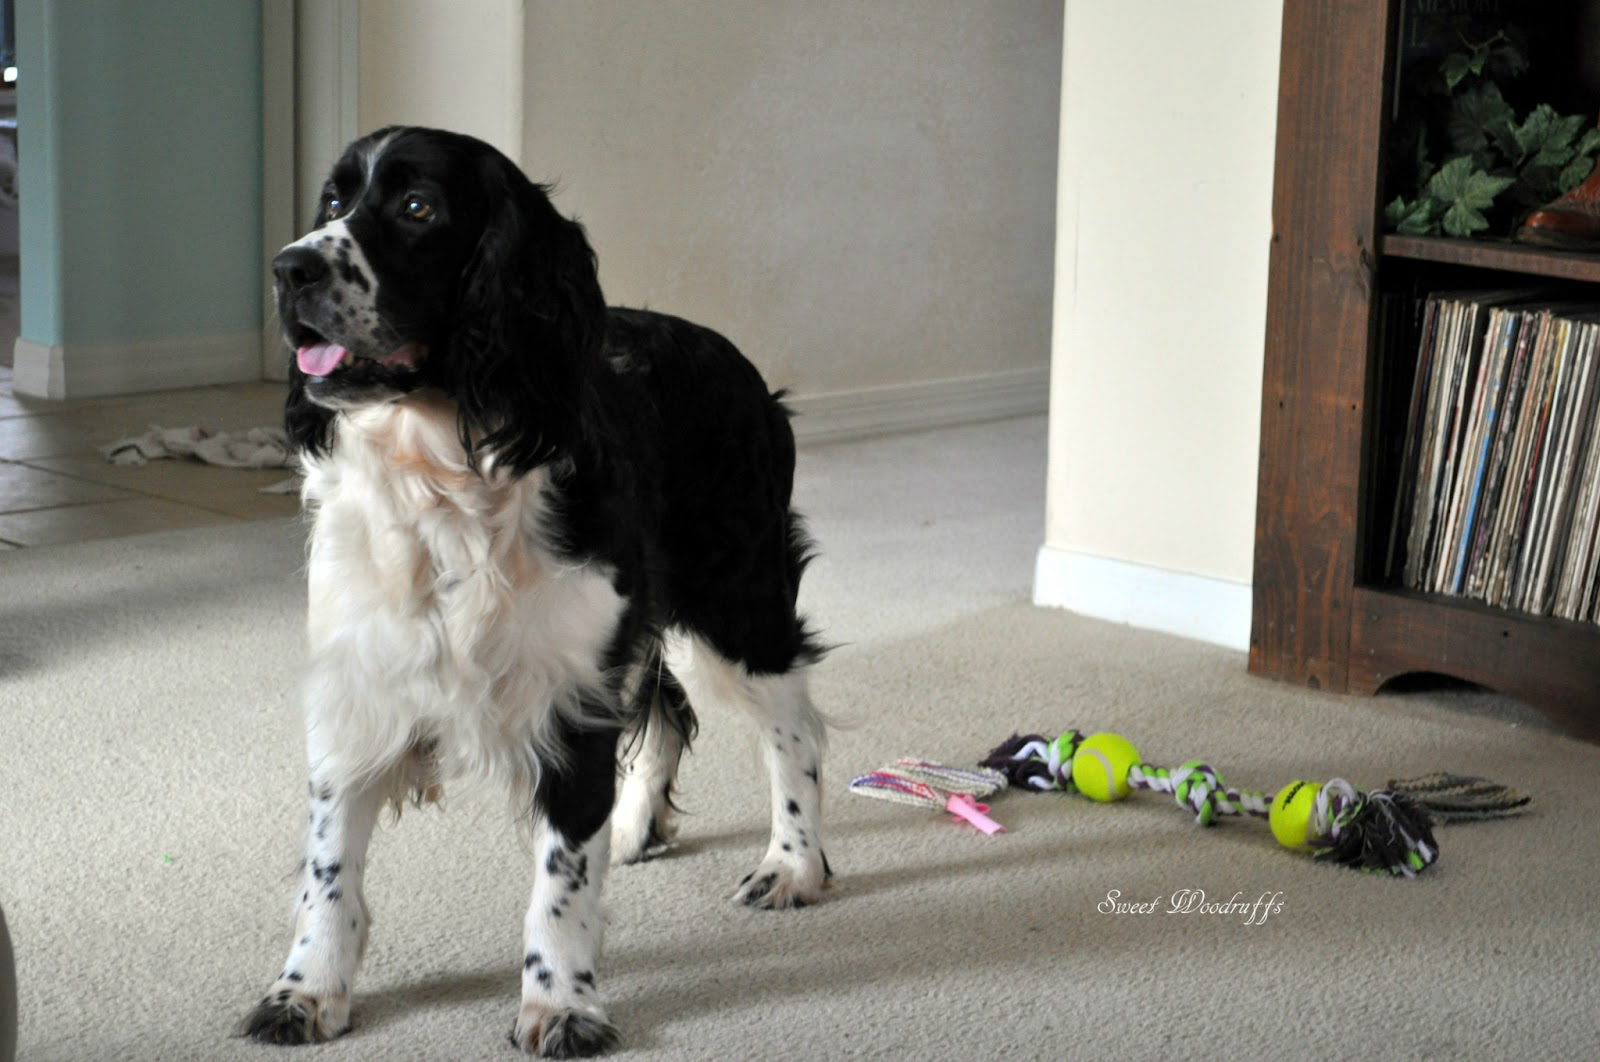 sweet woodruffs  springer spaniel rescue and foster